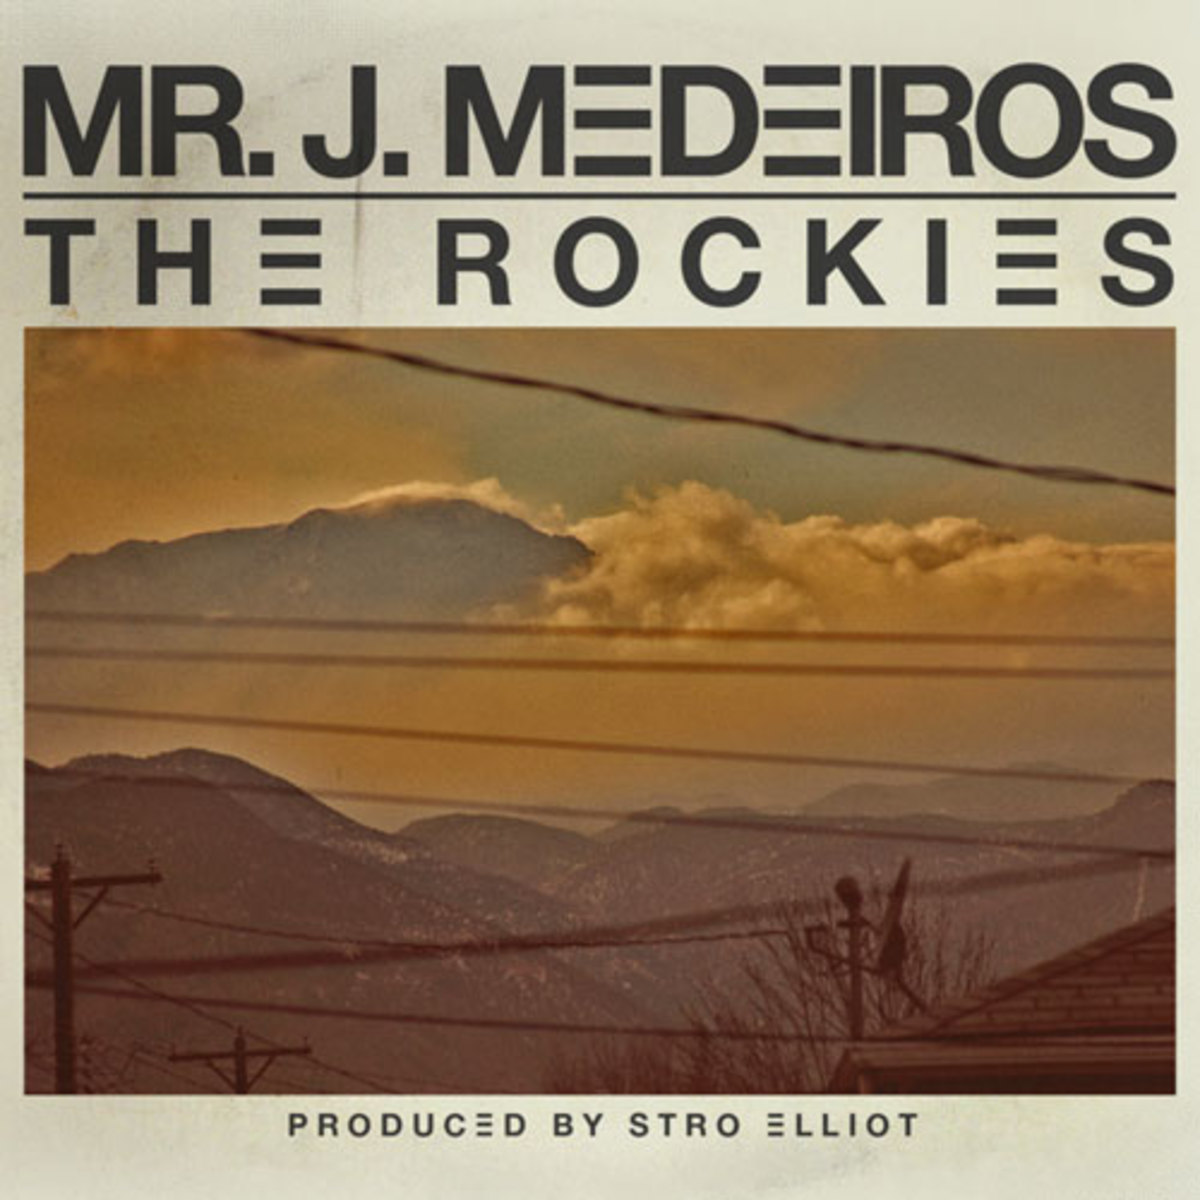 mrjmed-therockies.jpg